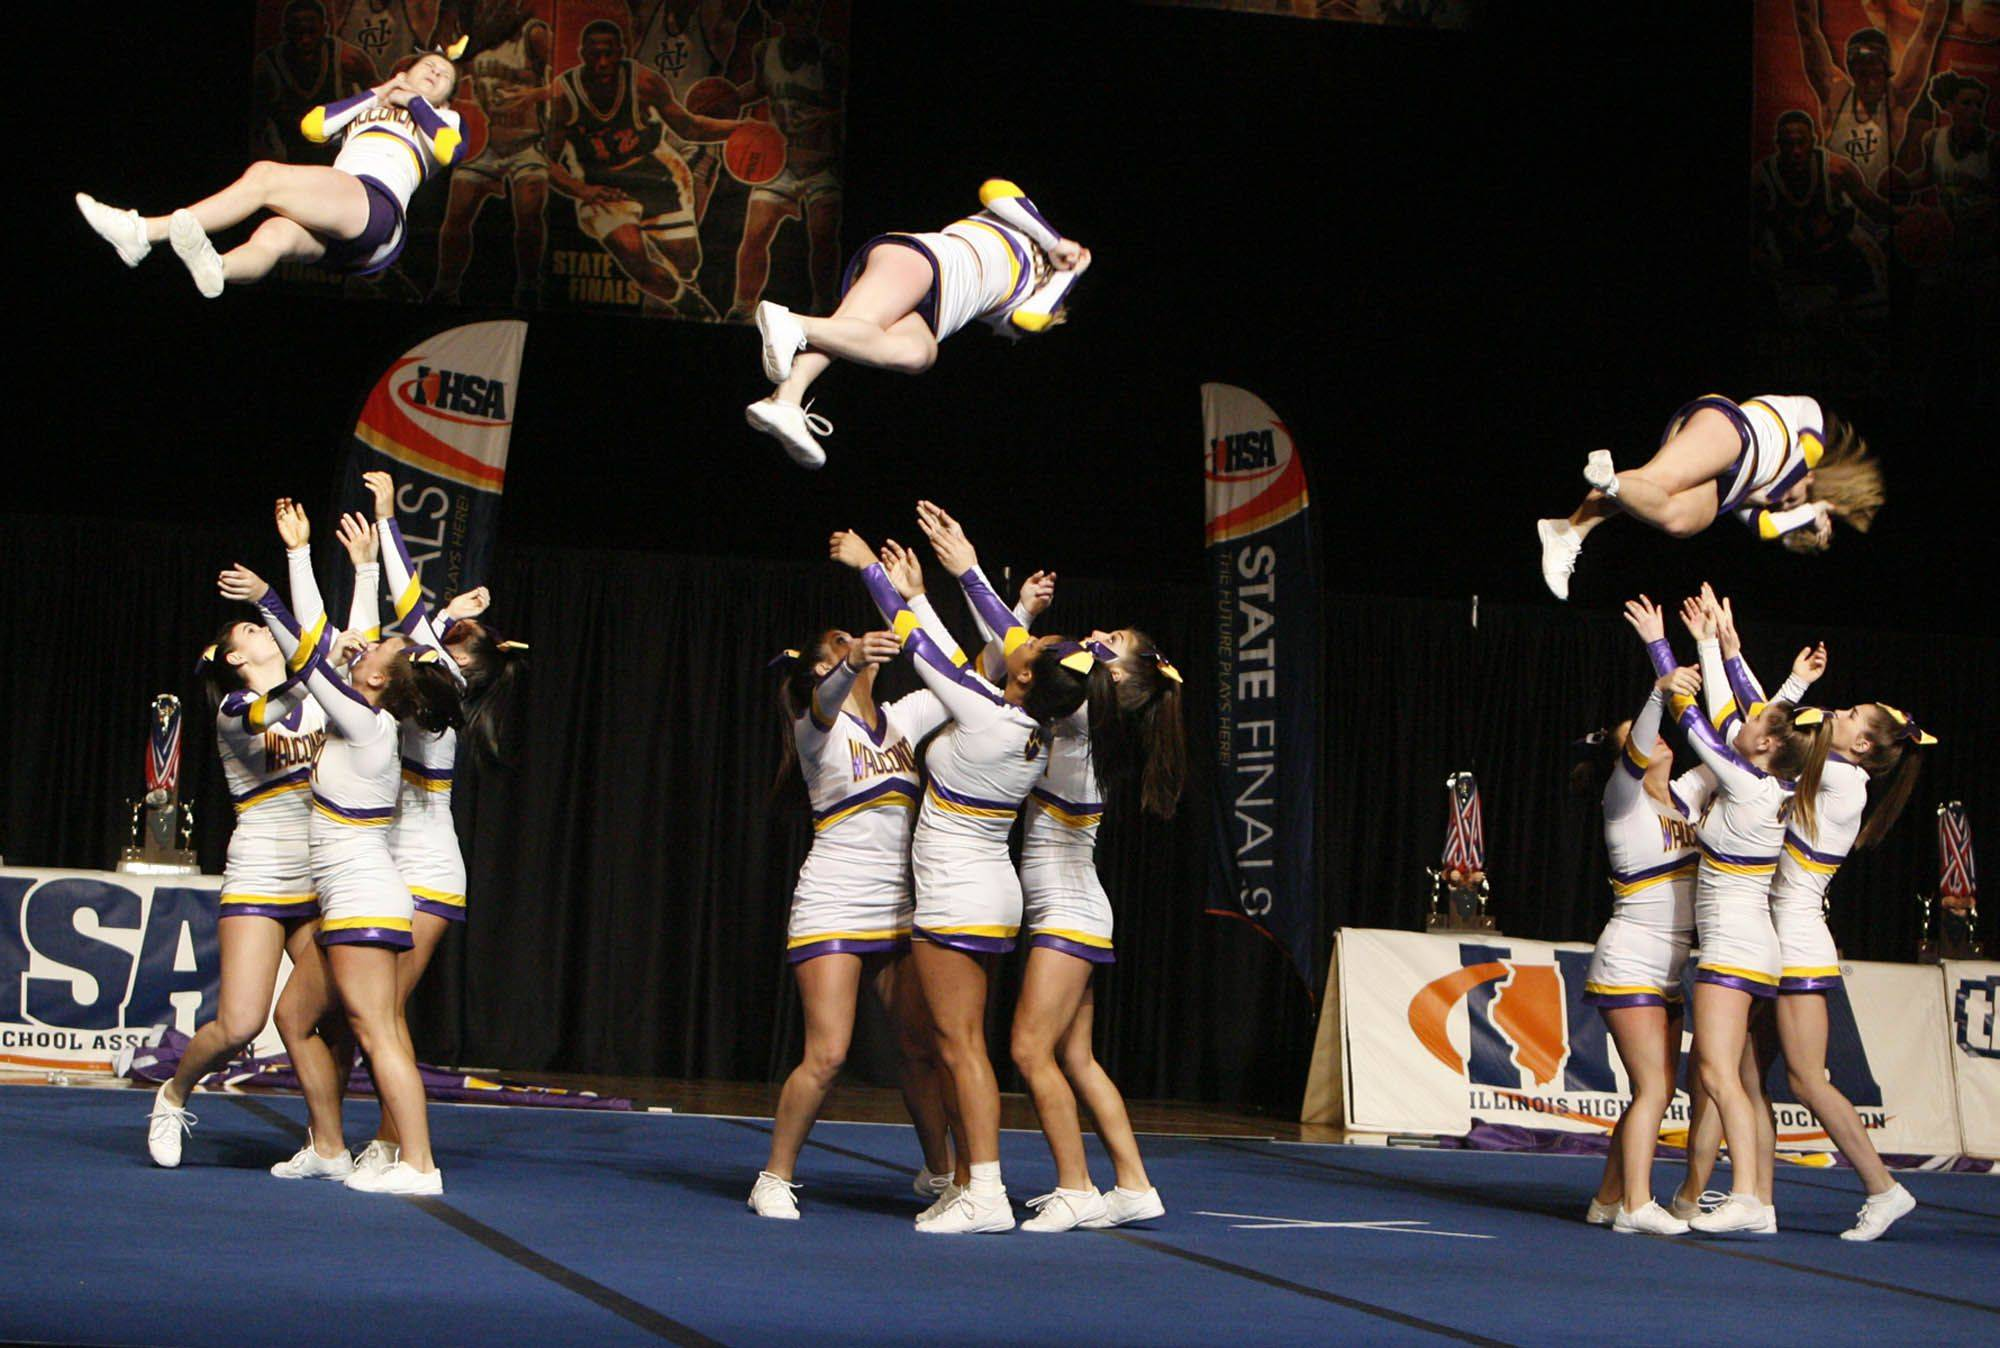 Wauconda competes in the medium team category at IHSA cheerleading state finals at U.S. Cellular Coliseum in Bloomington on Saturday, February 4th